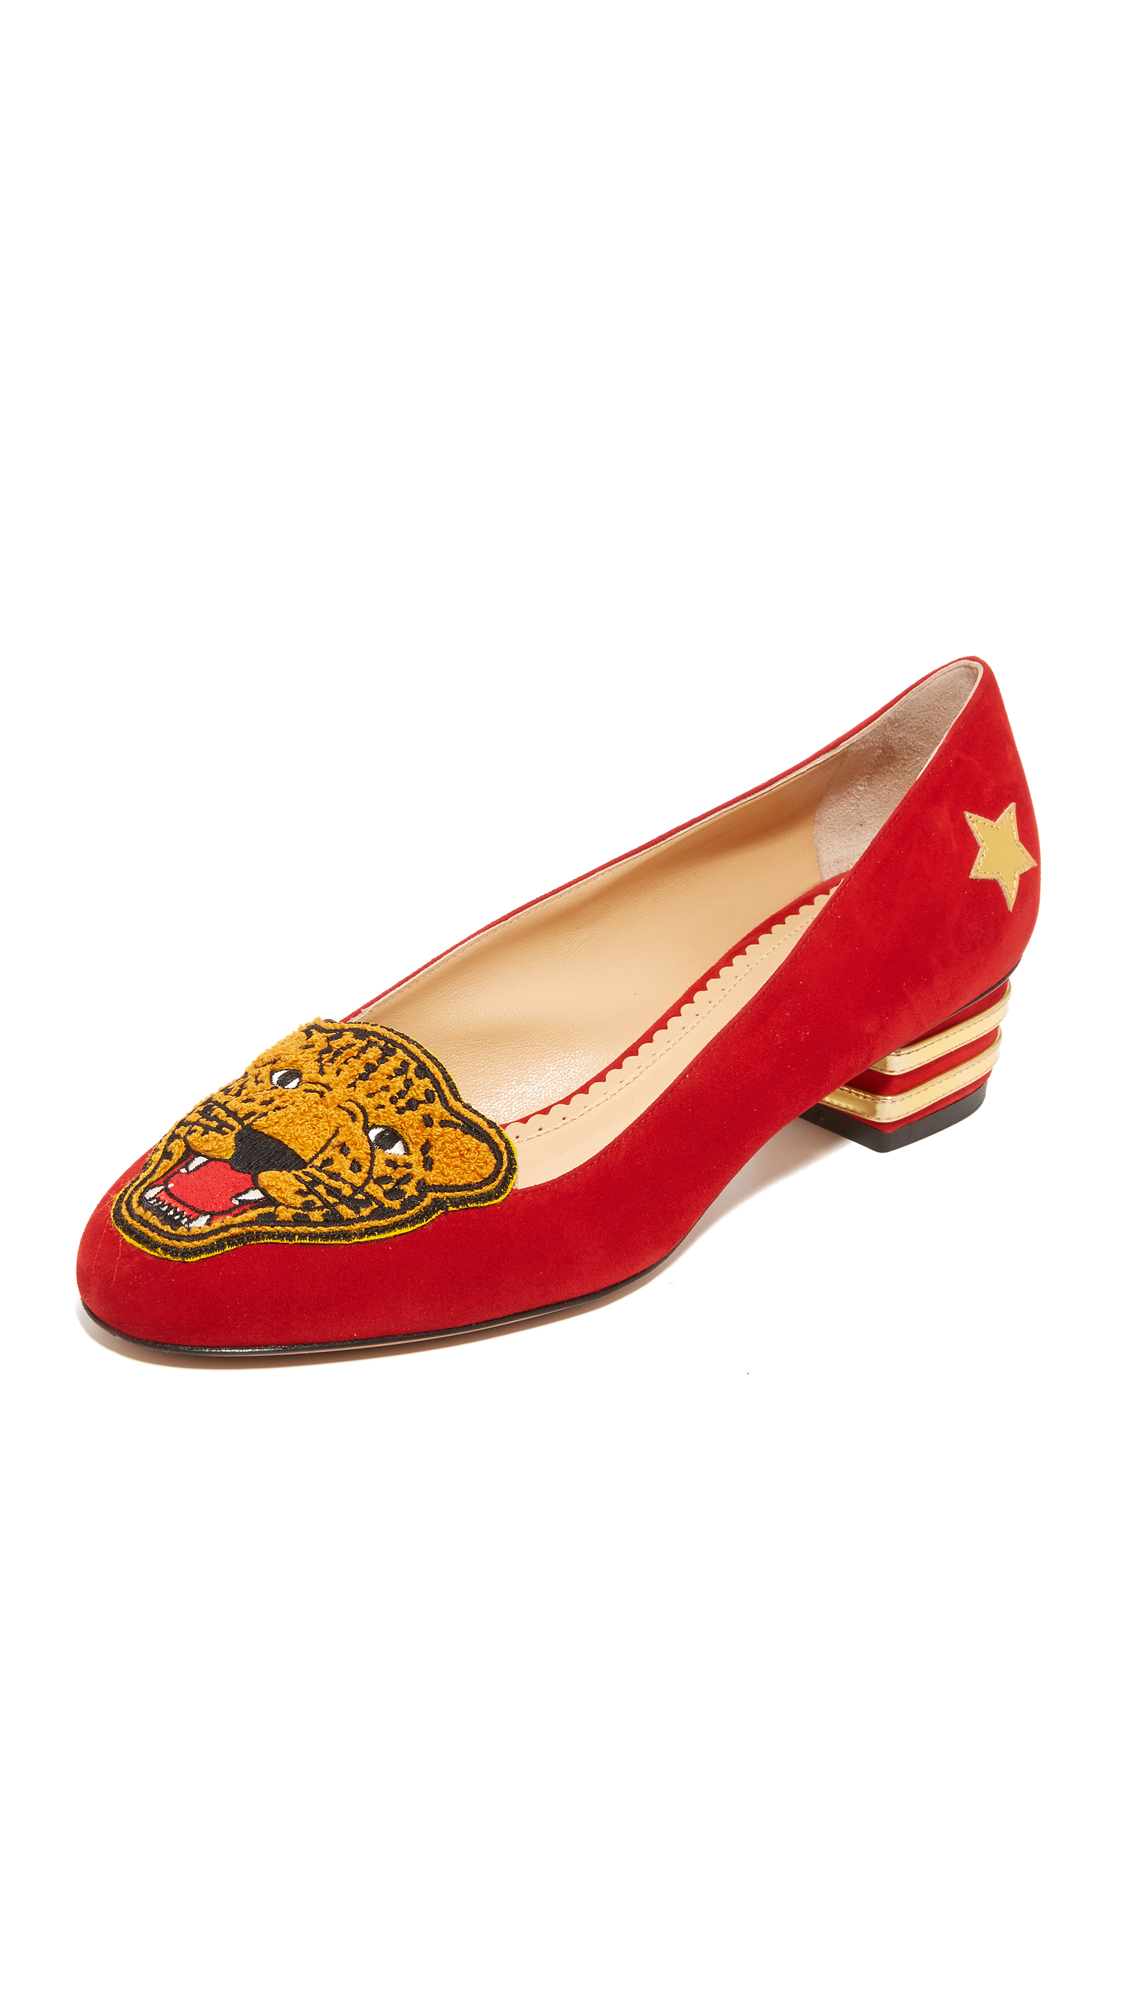 Charlotte Olympia Mascot Flats - Red/Gold